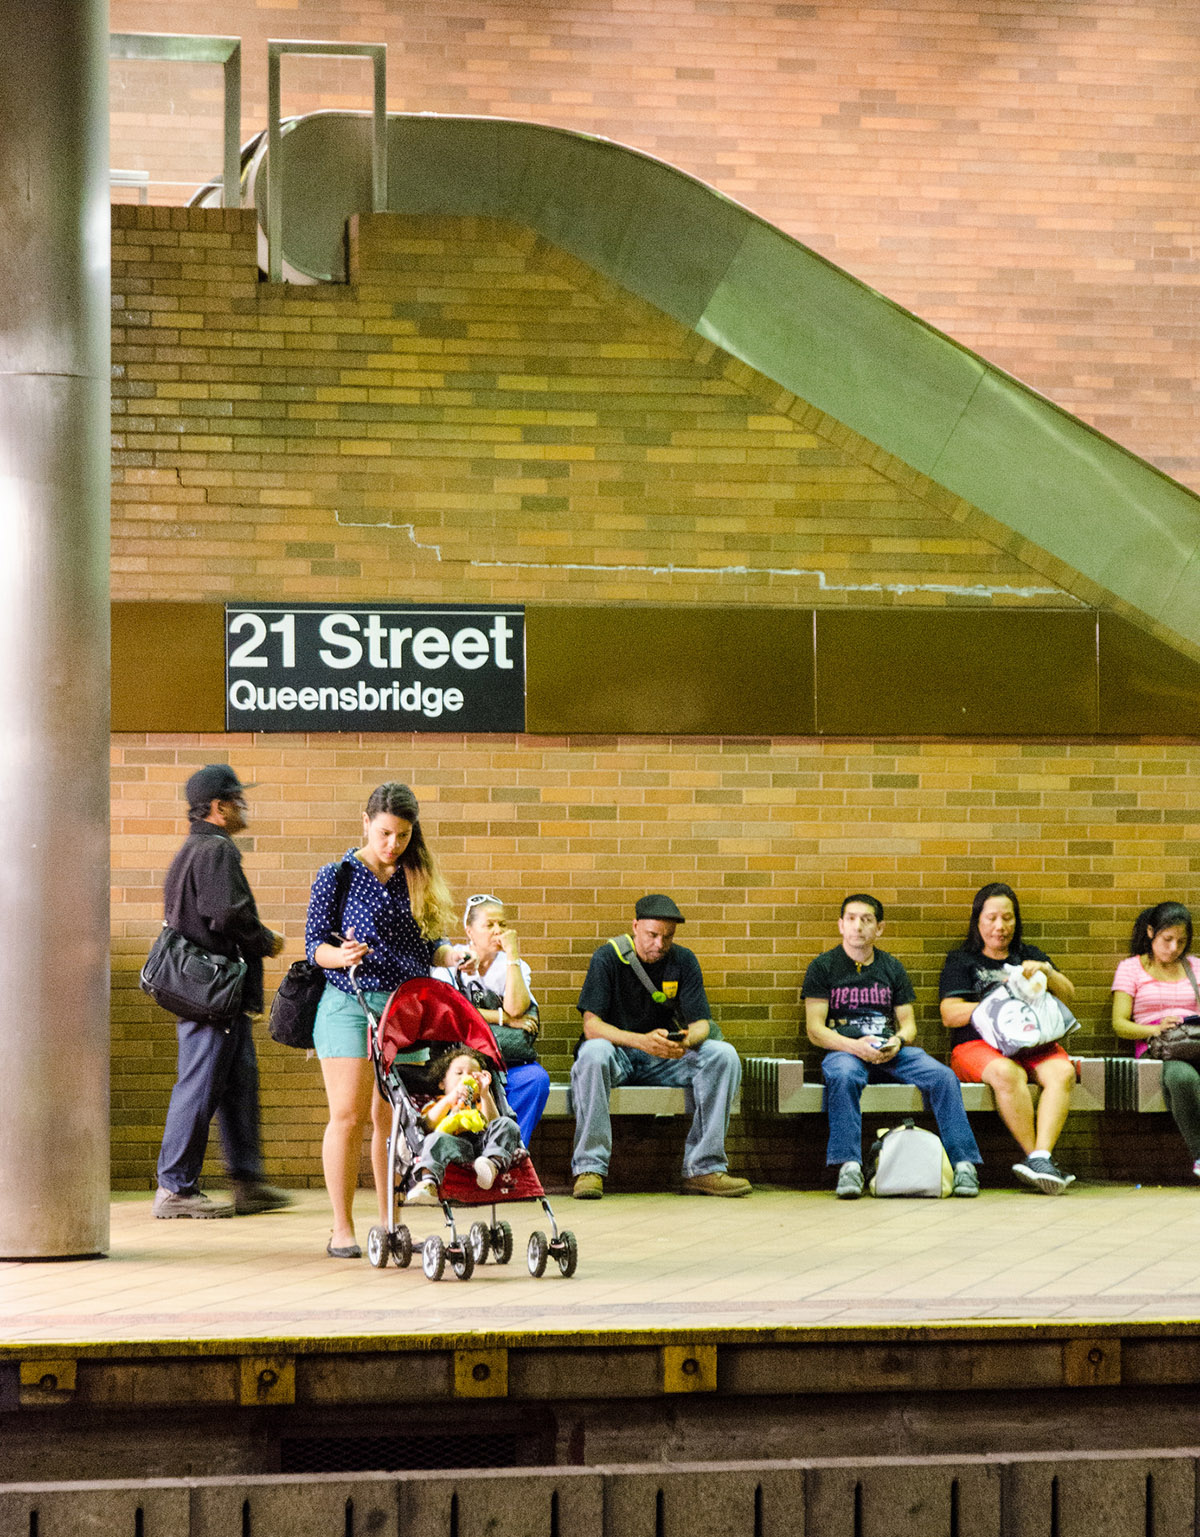 21st Street / Queensbridge subway stop in Queens, NYC.